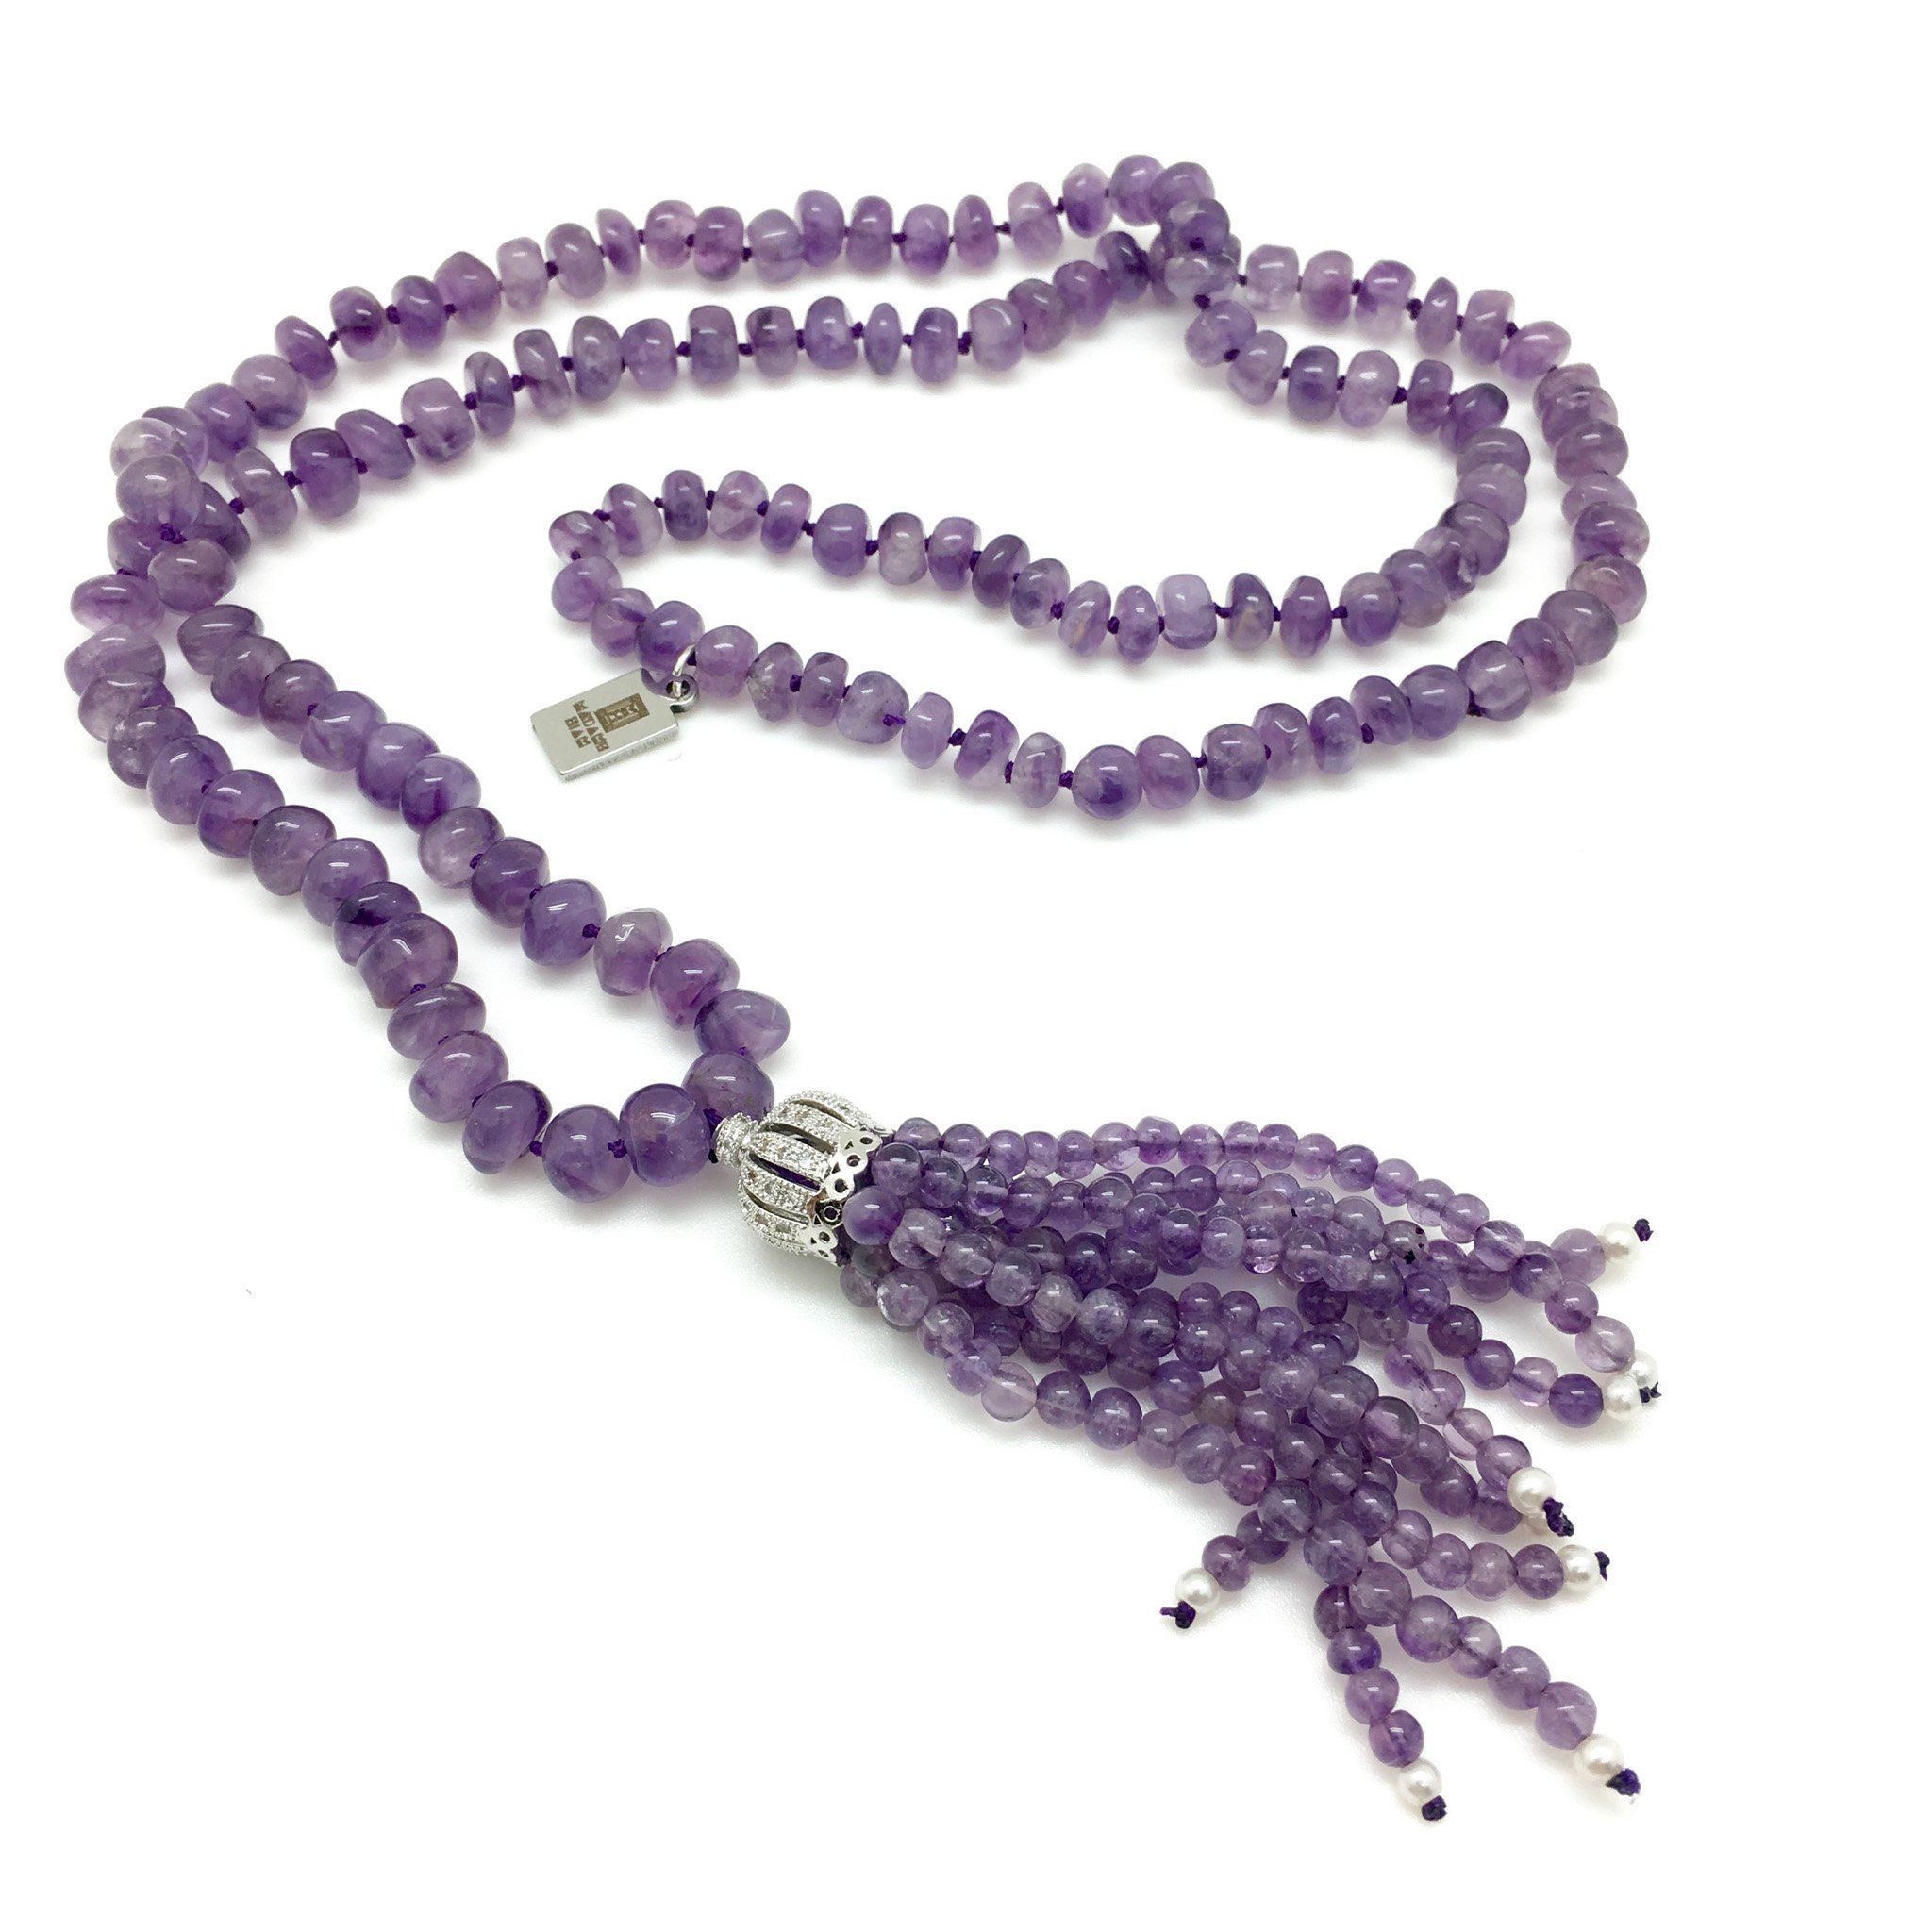 Stona purple amethyst tassel necklace - MadamSiam